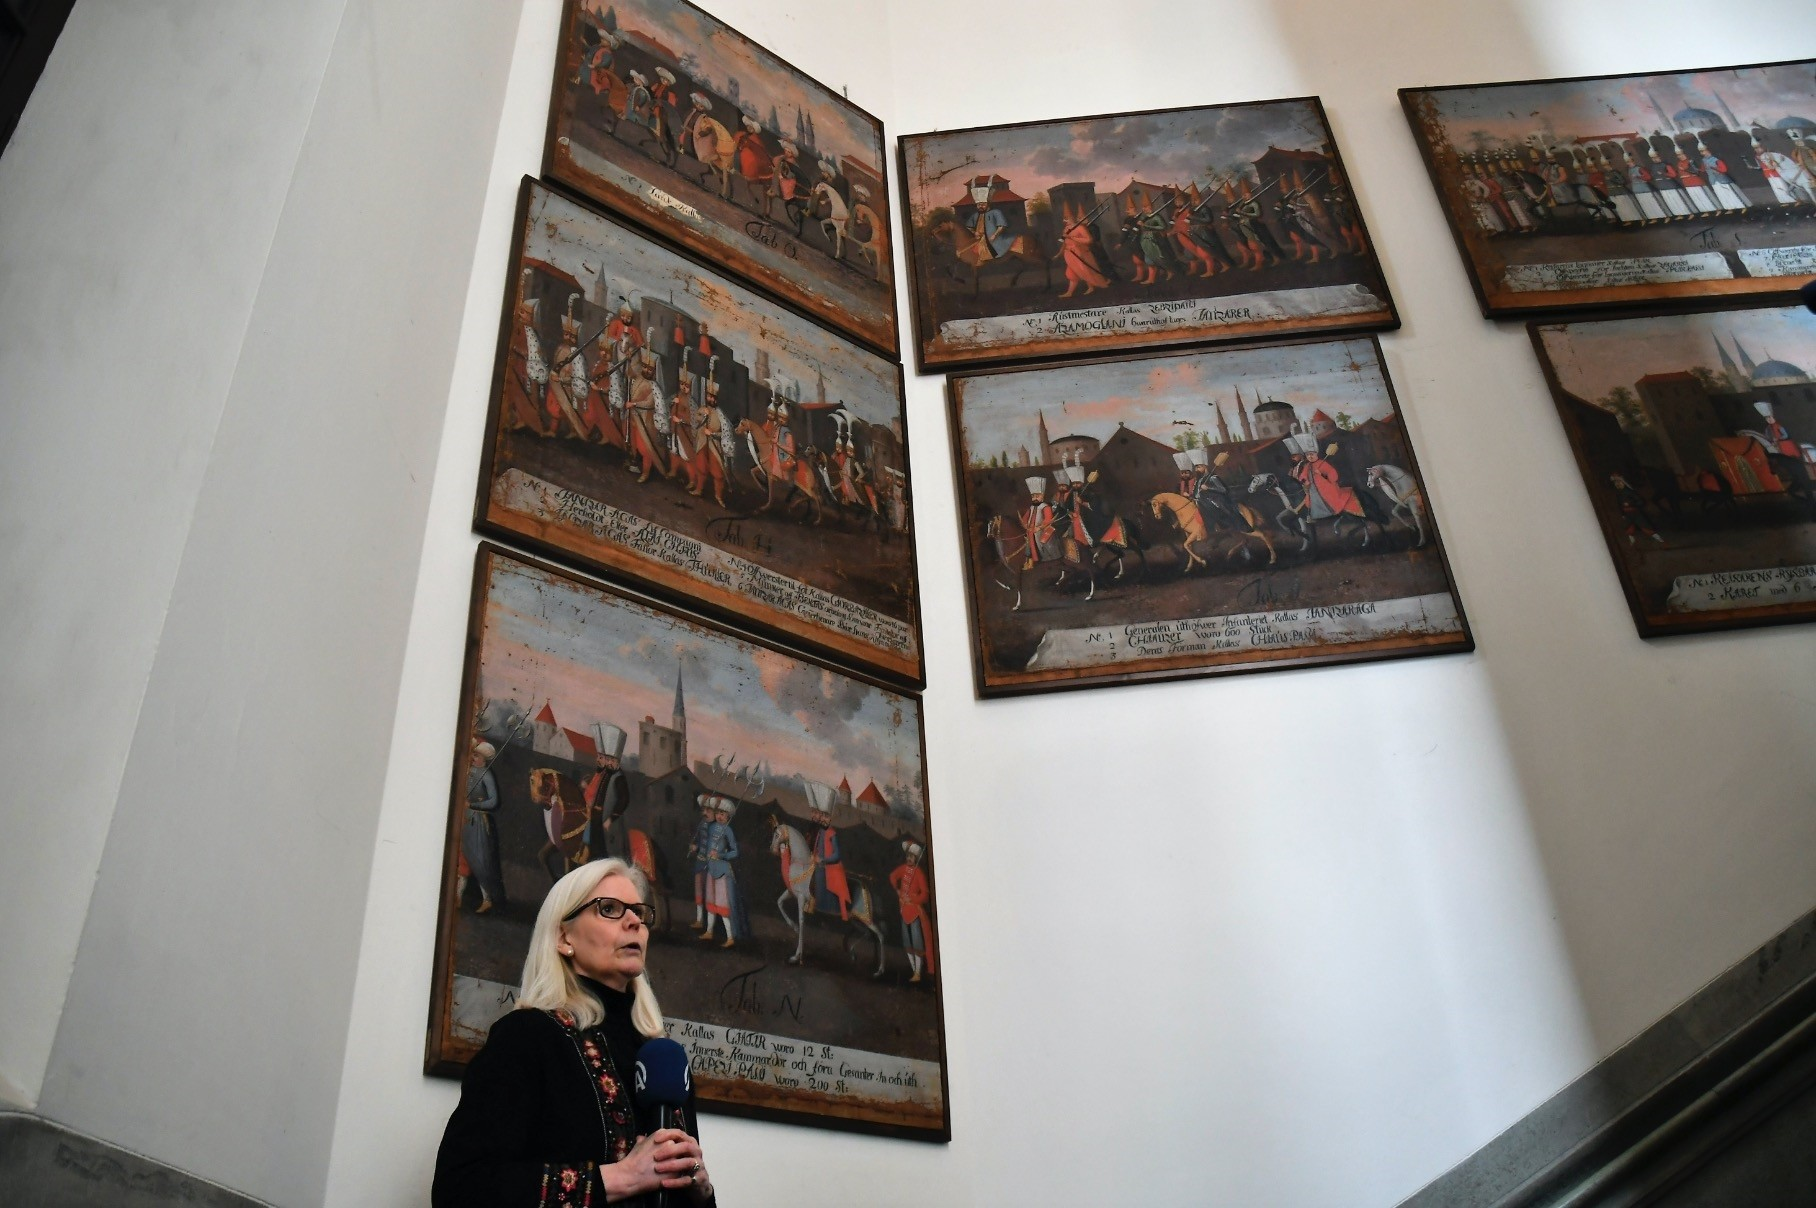 Nordiska Museumu2019s manager, Ulla Karin Warberg said that the paintings are reflections of the cultural relation between the two countries and are priceless.